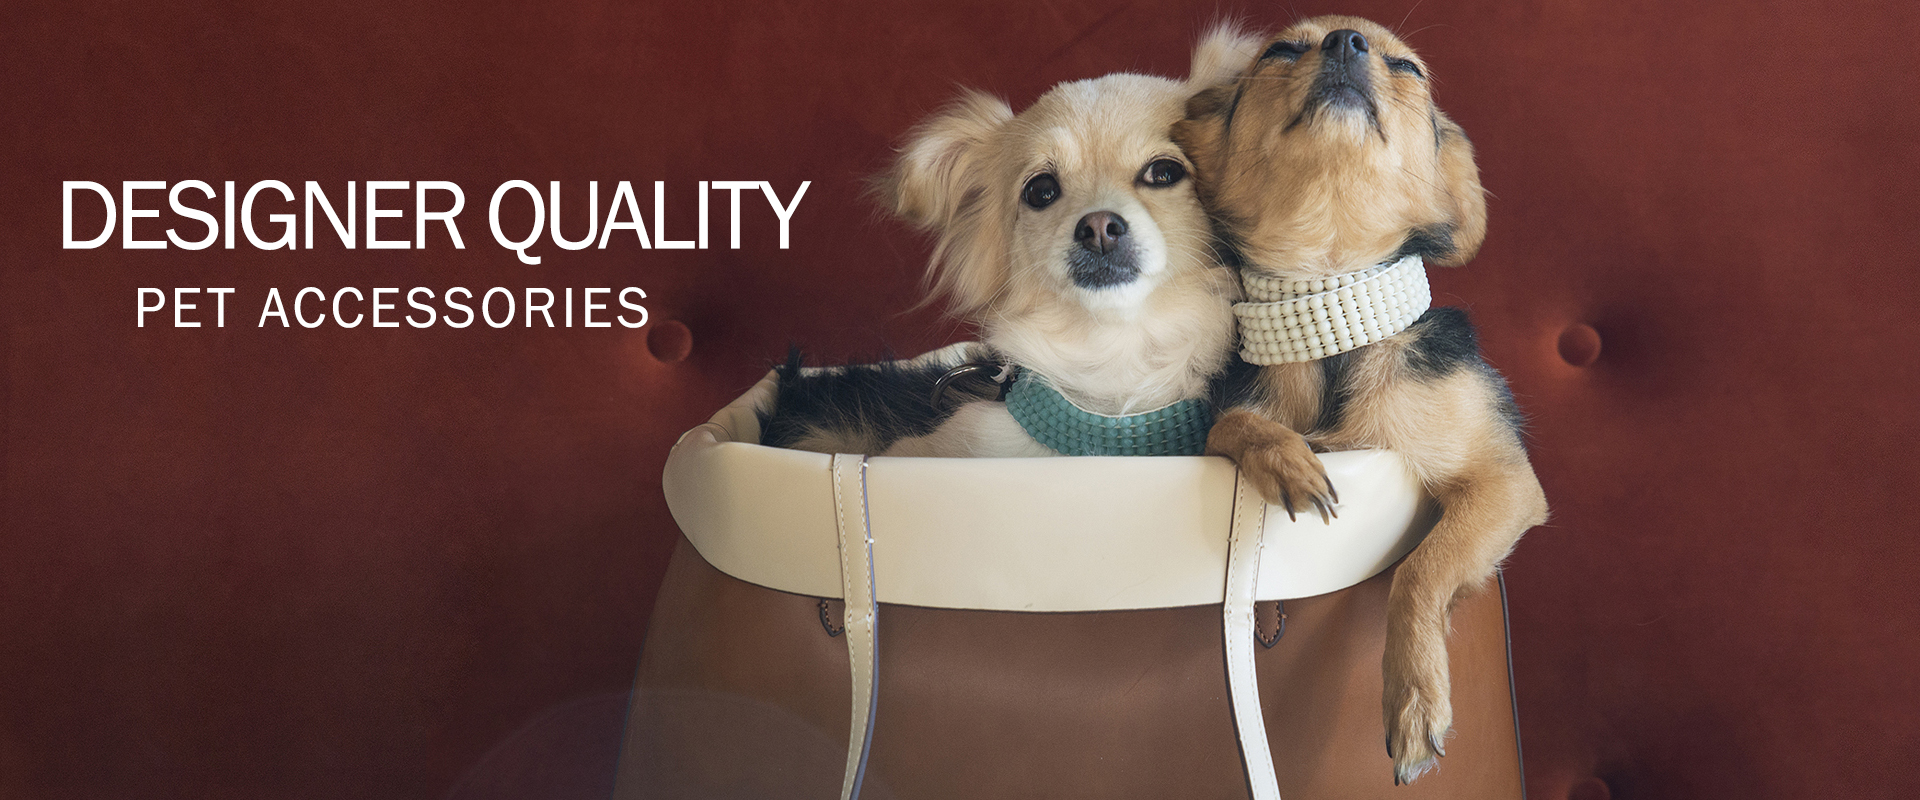 Designer-quality pet accessories